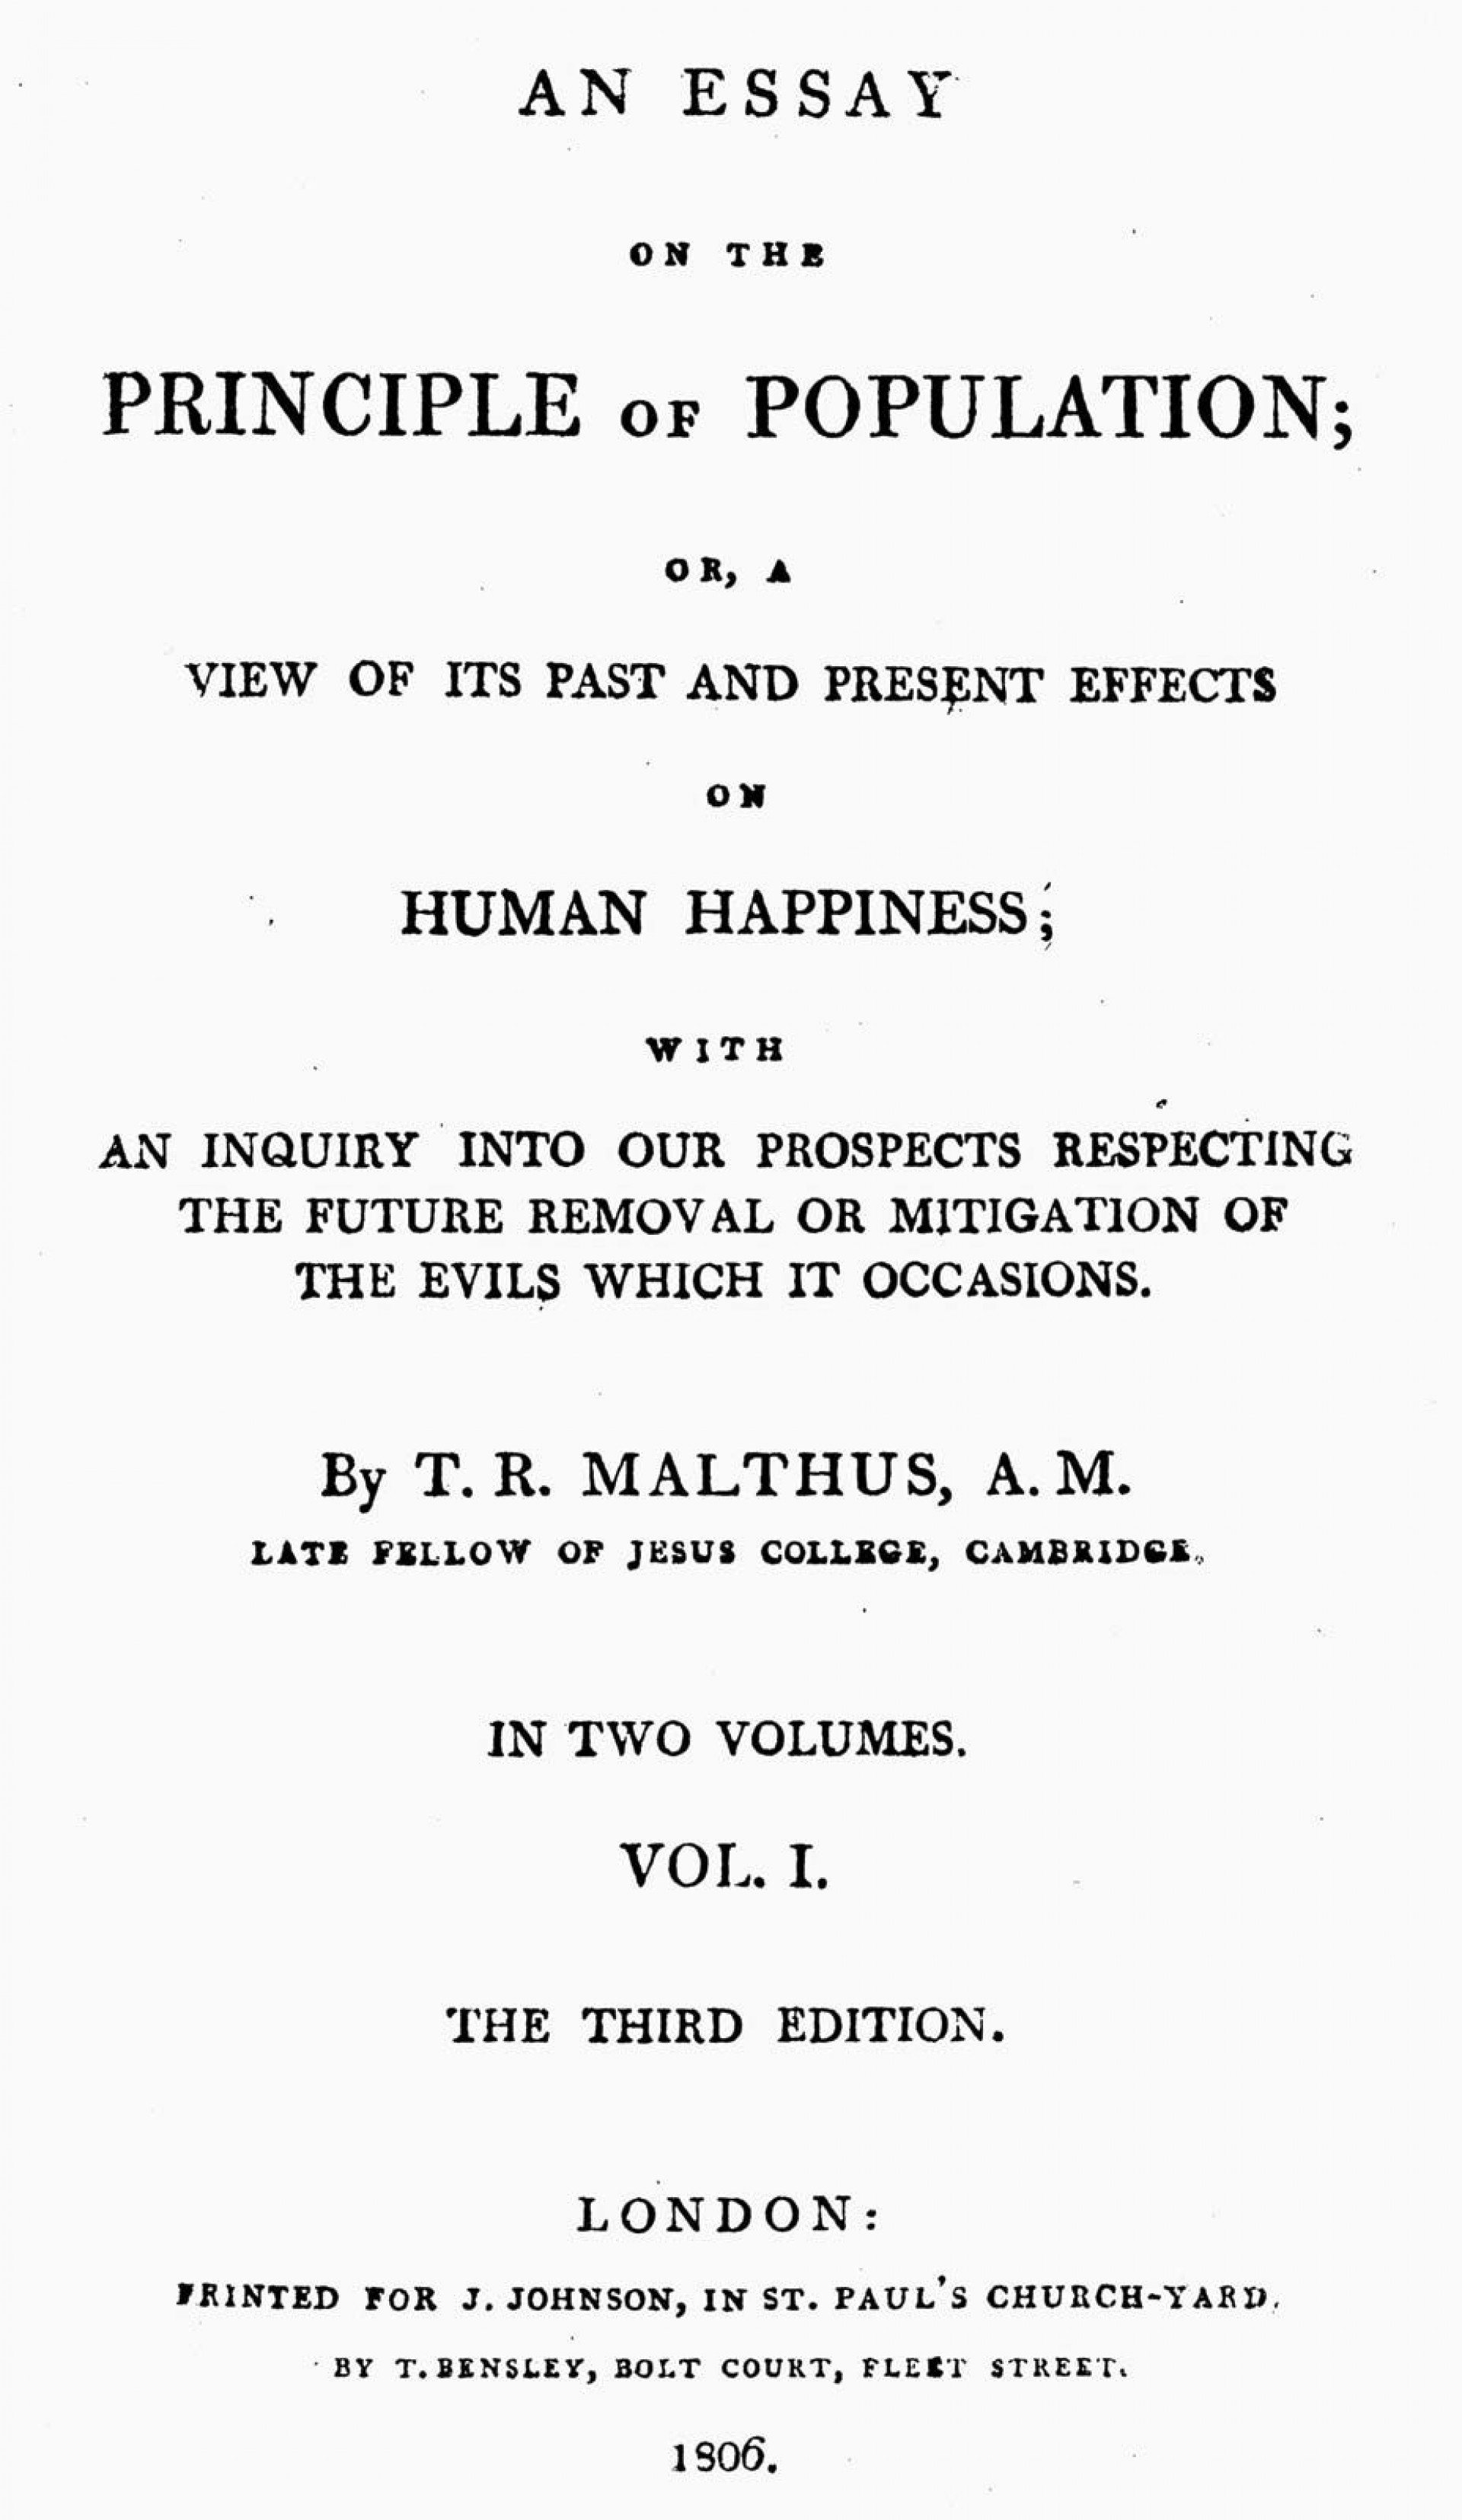 017 Thomas Malthus An Essay On The Principle Of Population Marvelous Summary Analysis Argued In His (1798) That 1920